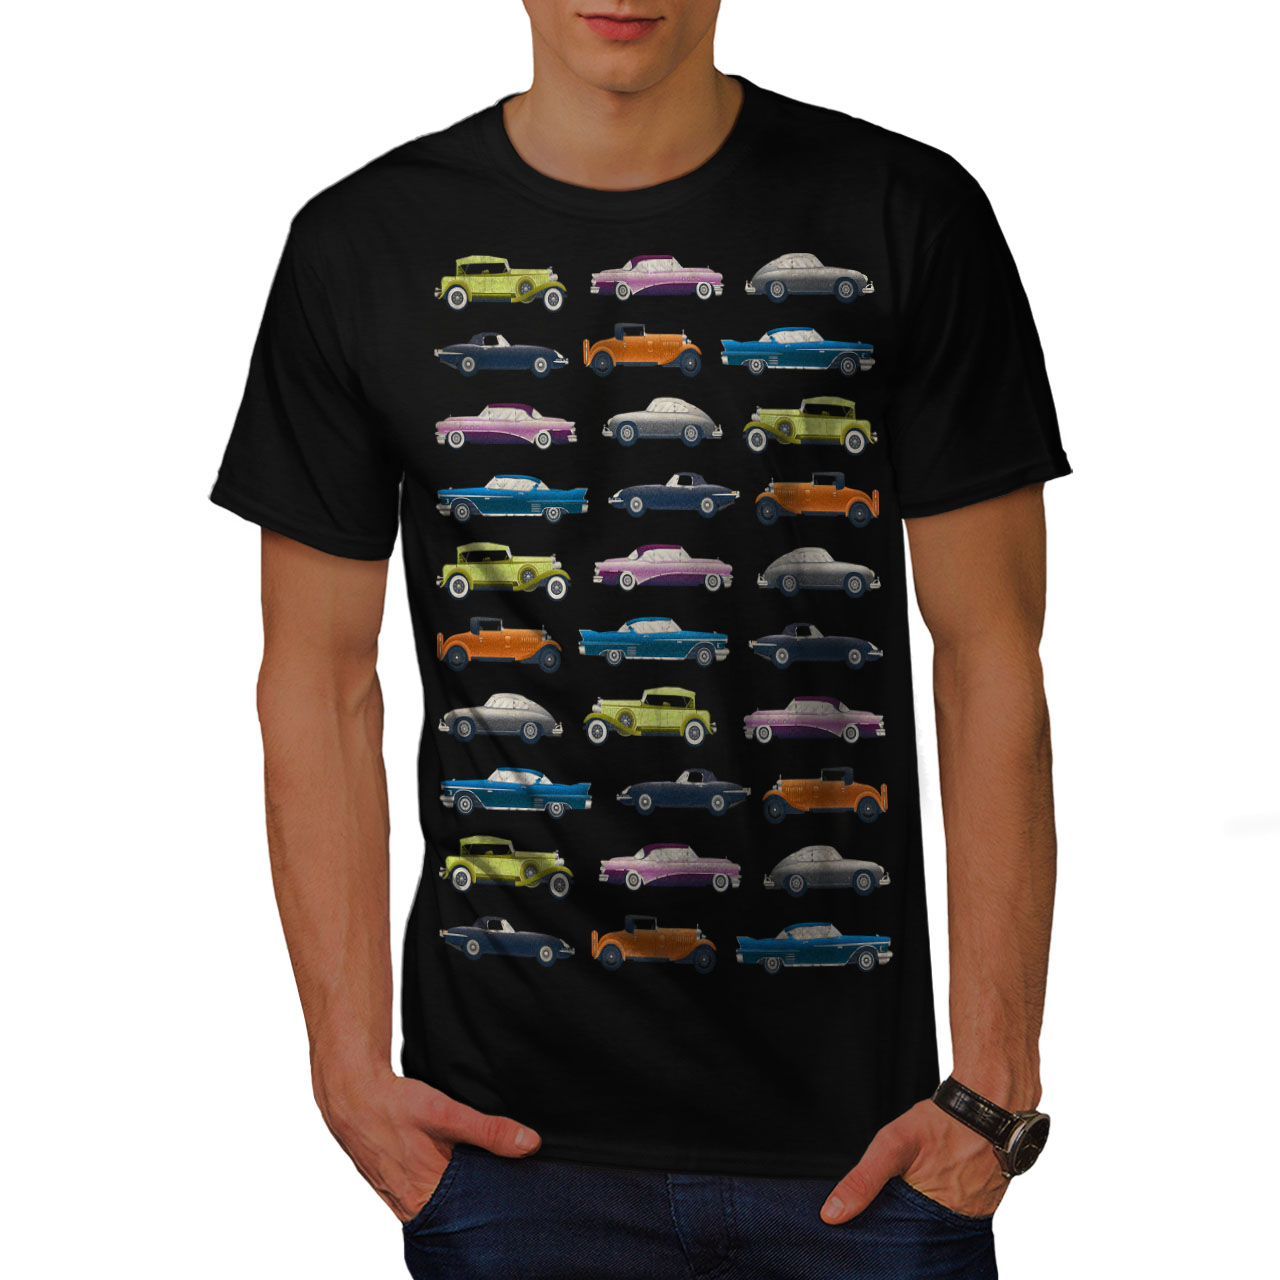 Wellcoda-Classic-Old-Pattern-Car-Mens-T-shirt-Retro-Graphic-Design-Printed-Tee thumbnail 3